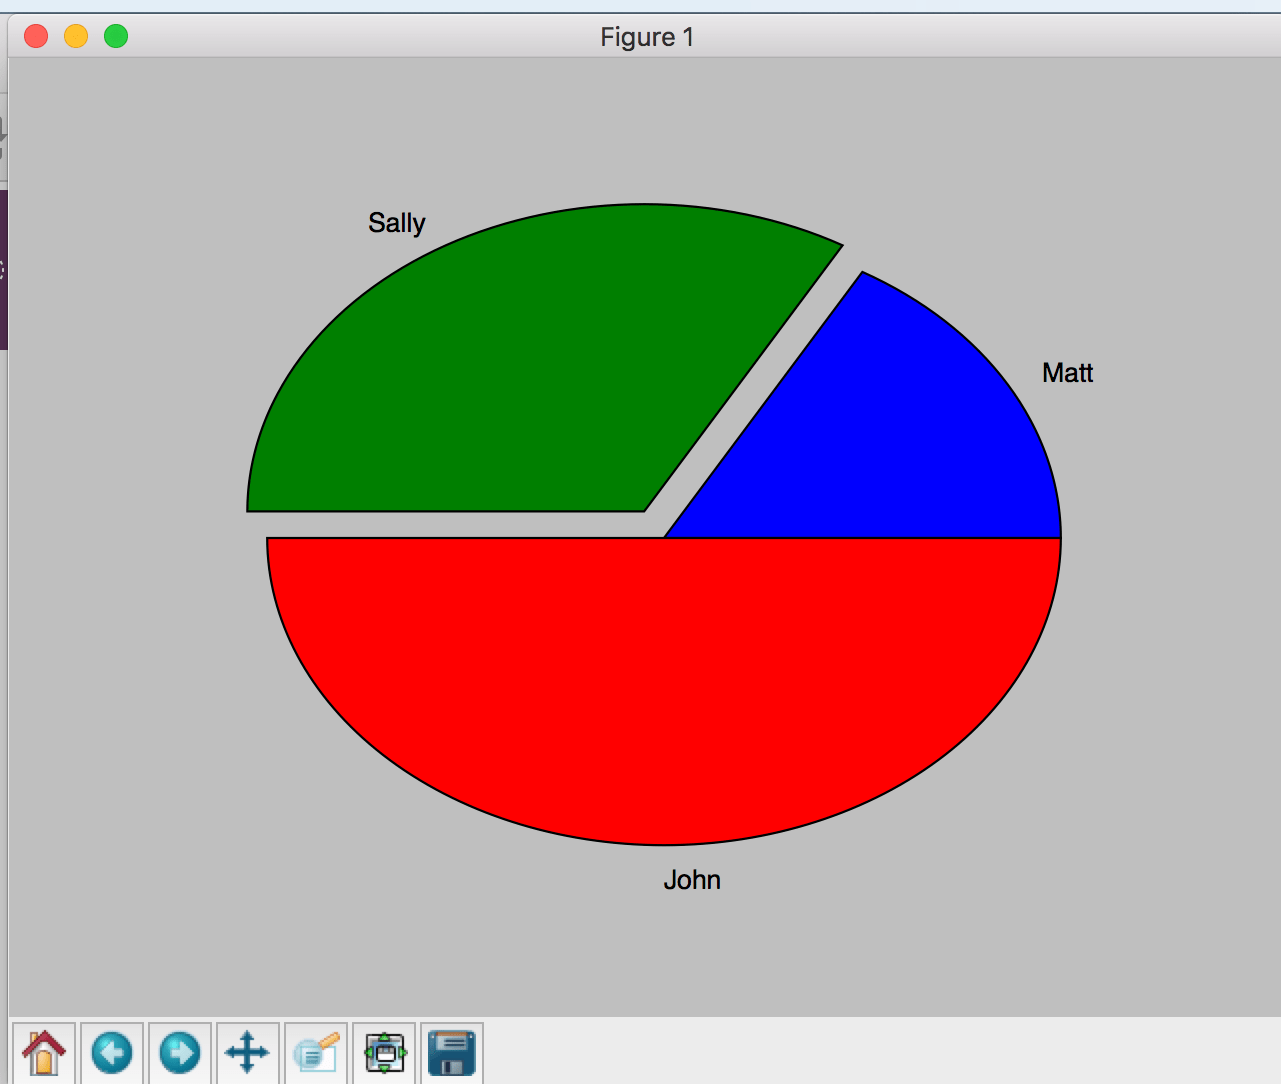 Exploded Pie Chart with 3 values